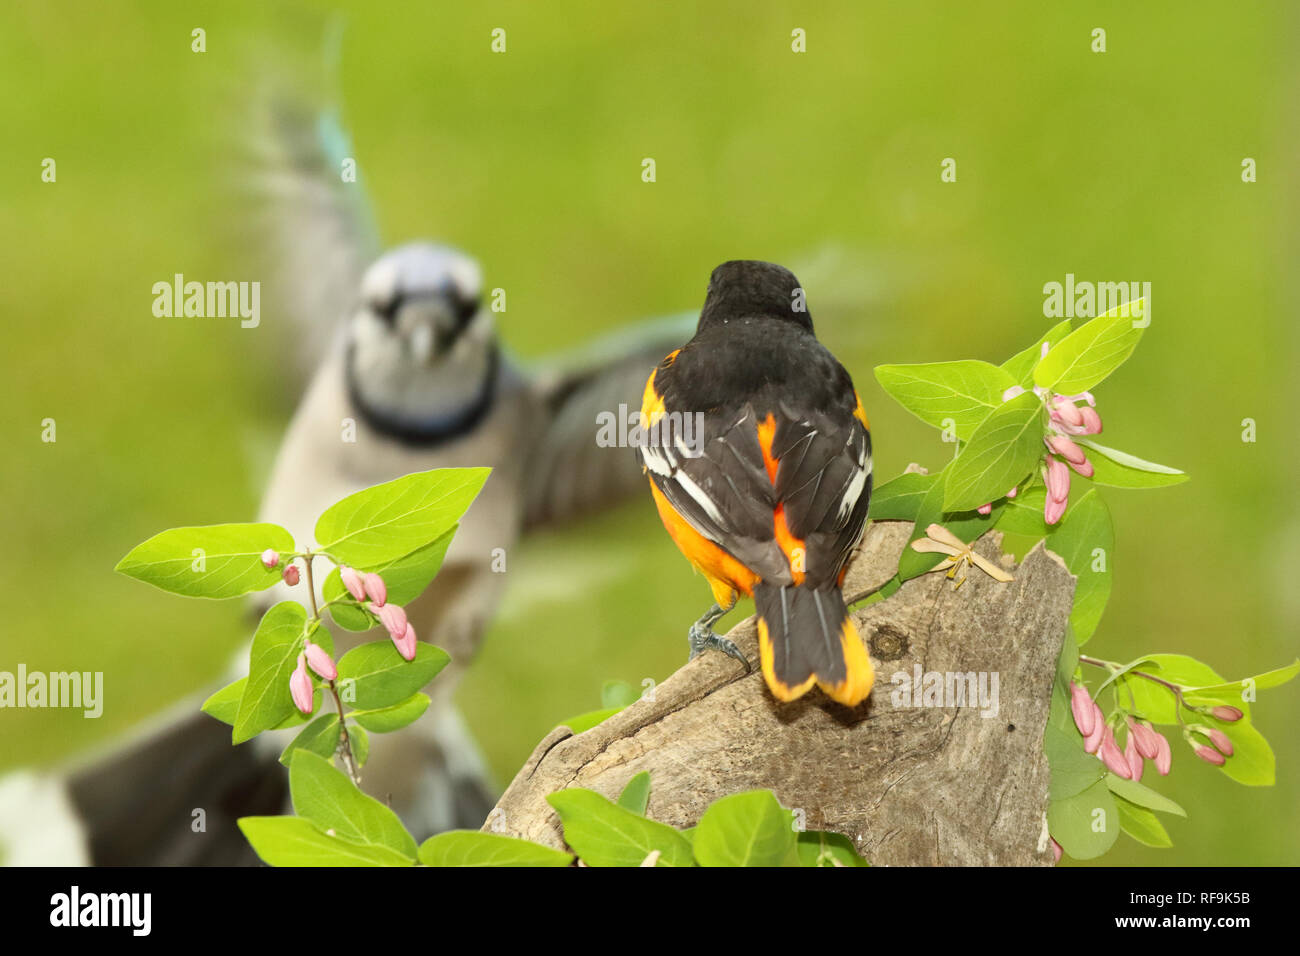 A Baltimore Oriole bracing for a Blue Jay flying in. Stock Photo